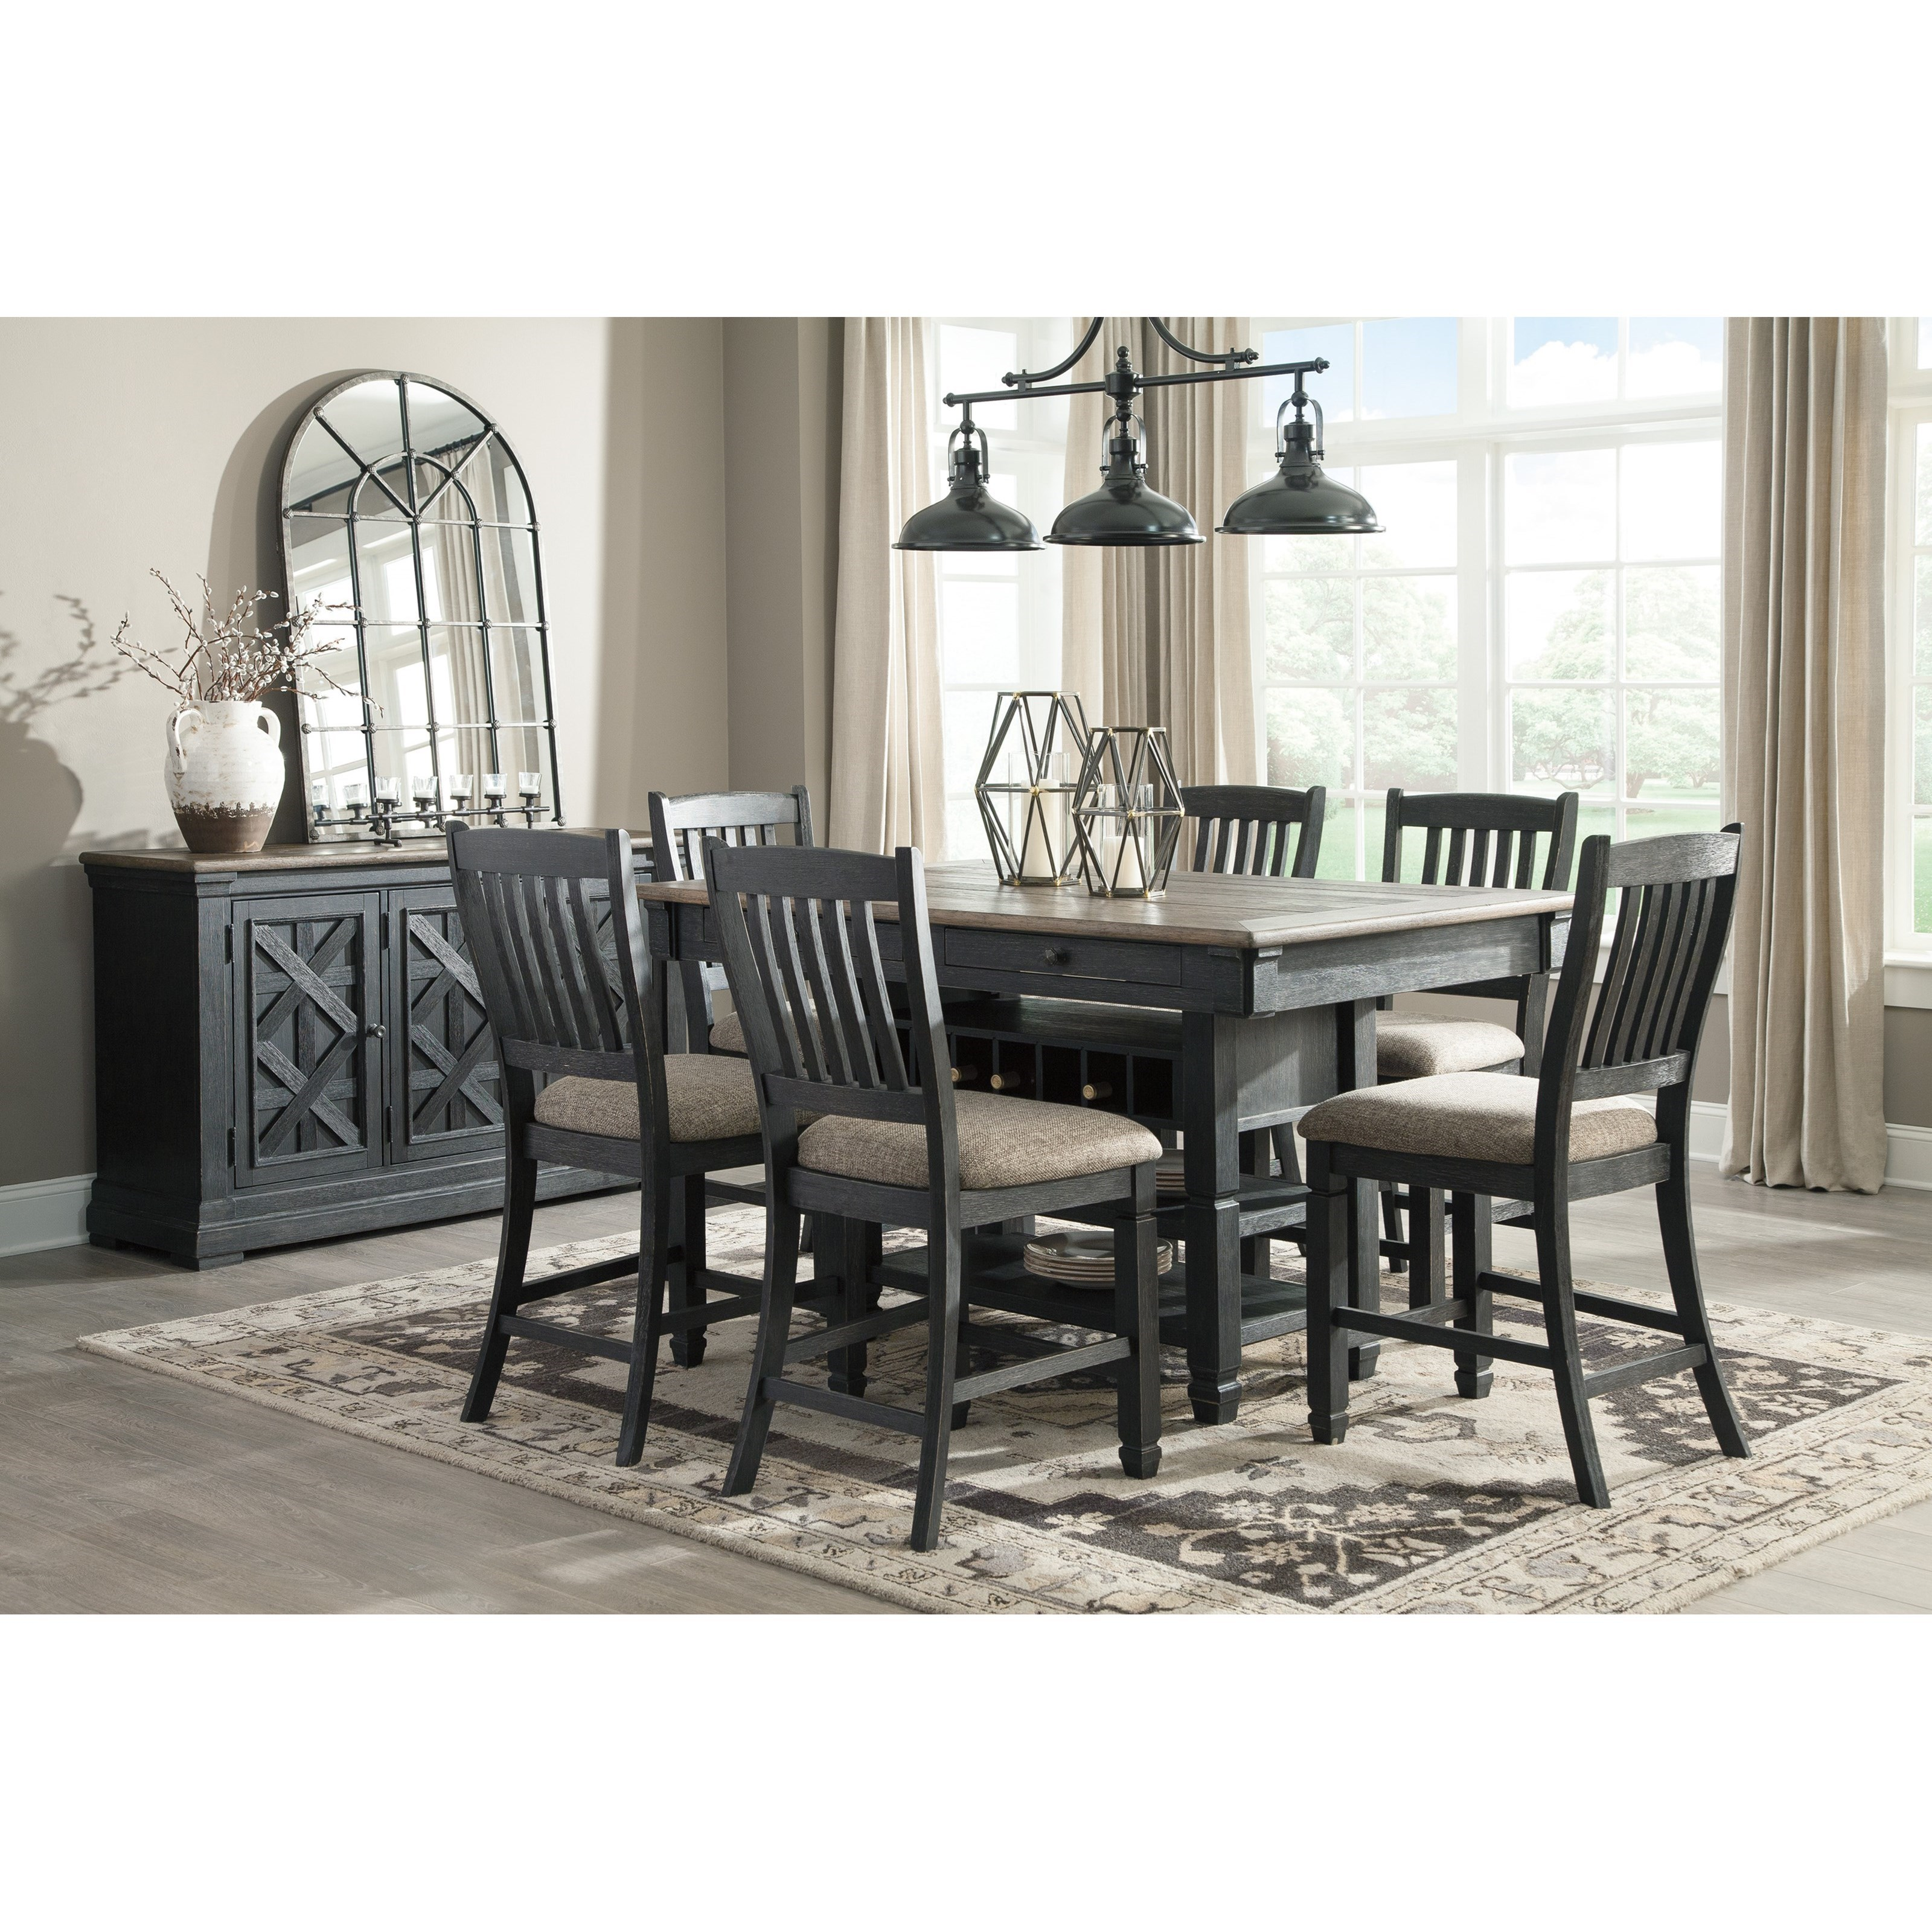 Tyler Creek Formal Dining Room Group by Signature Design by Ashley at Sparks HomeStore